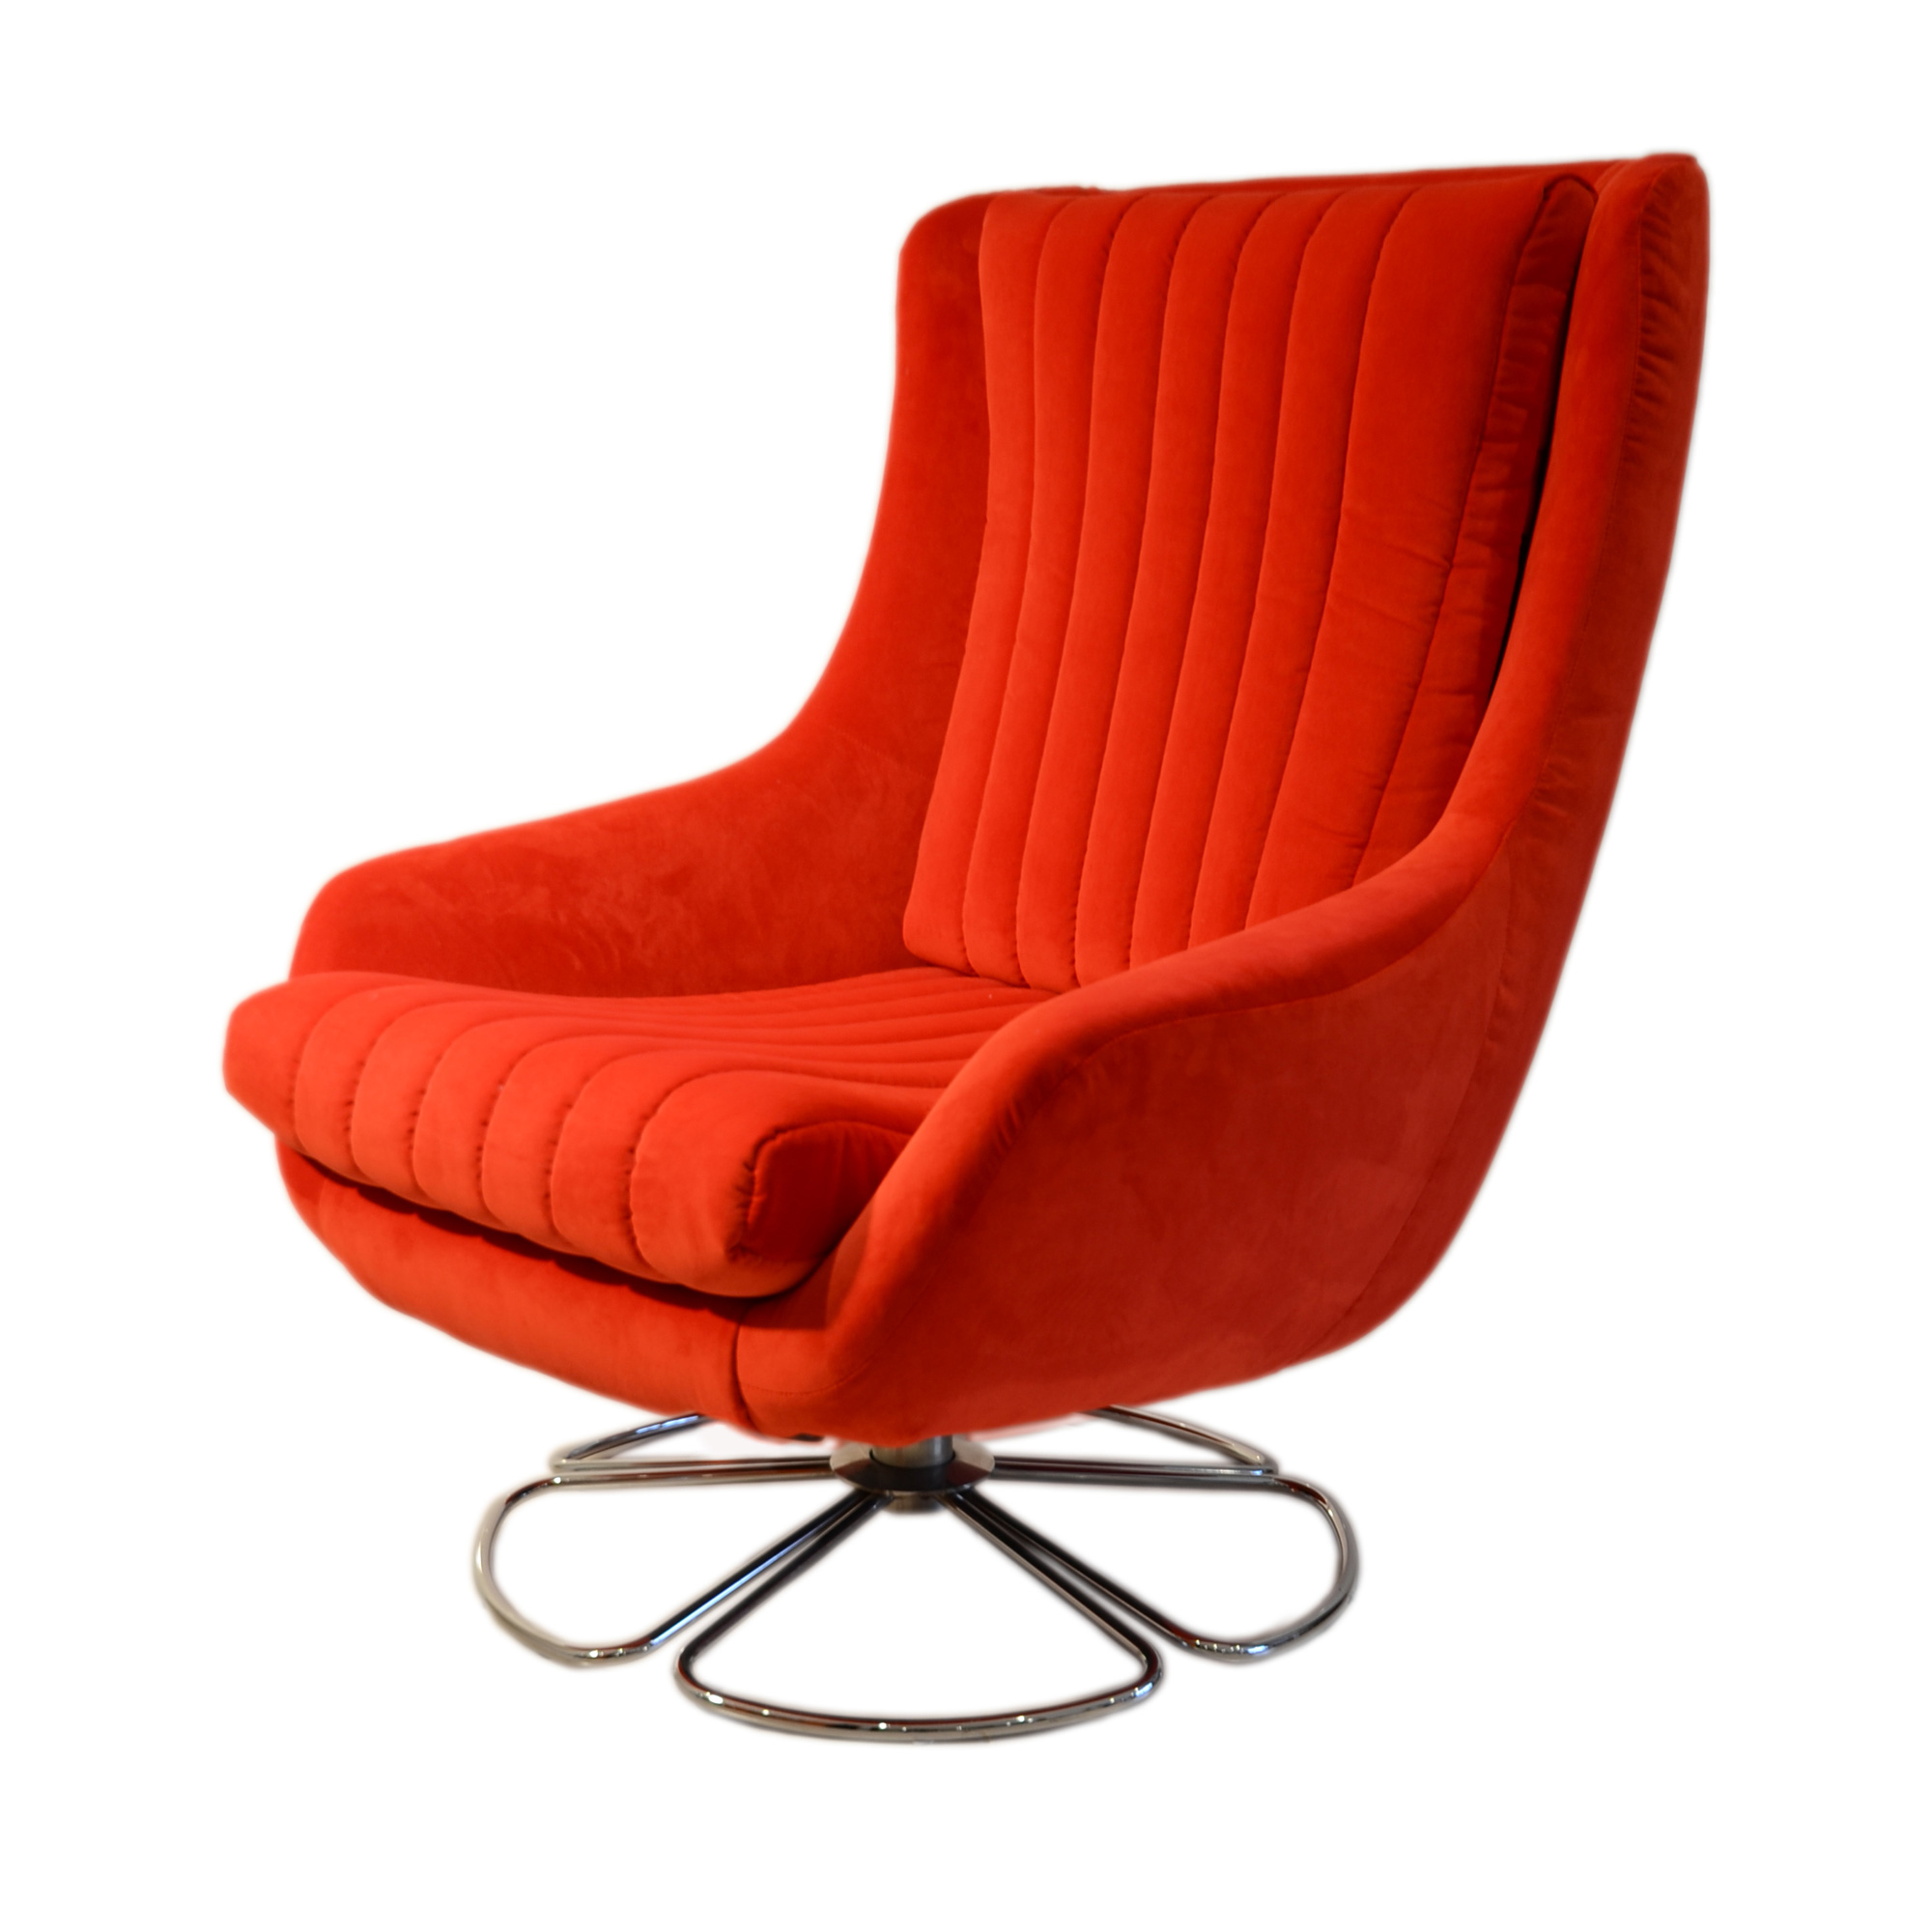 portobello chair side swivel red egg chair